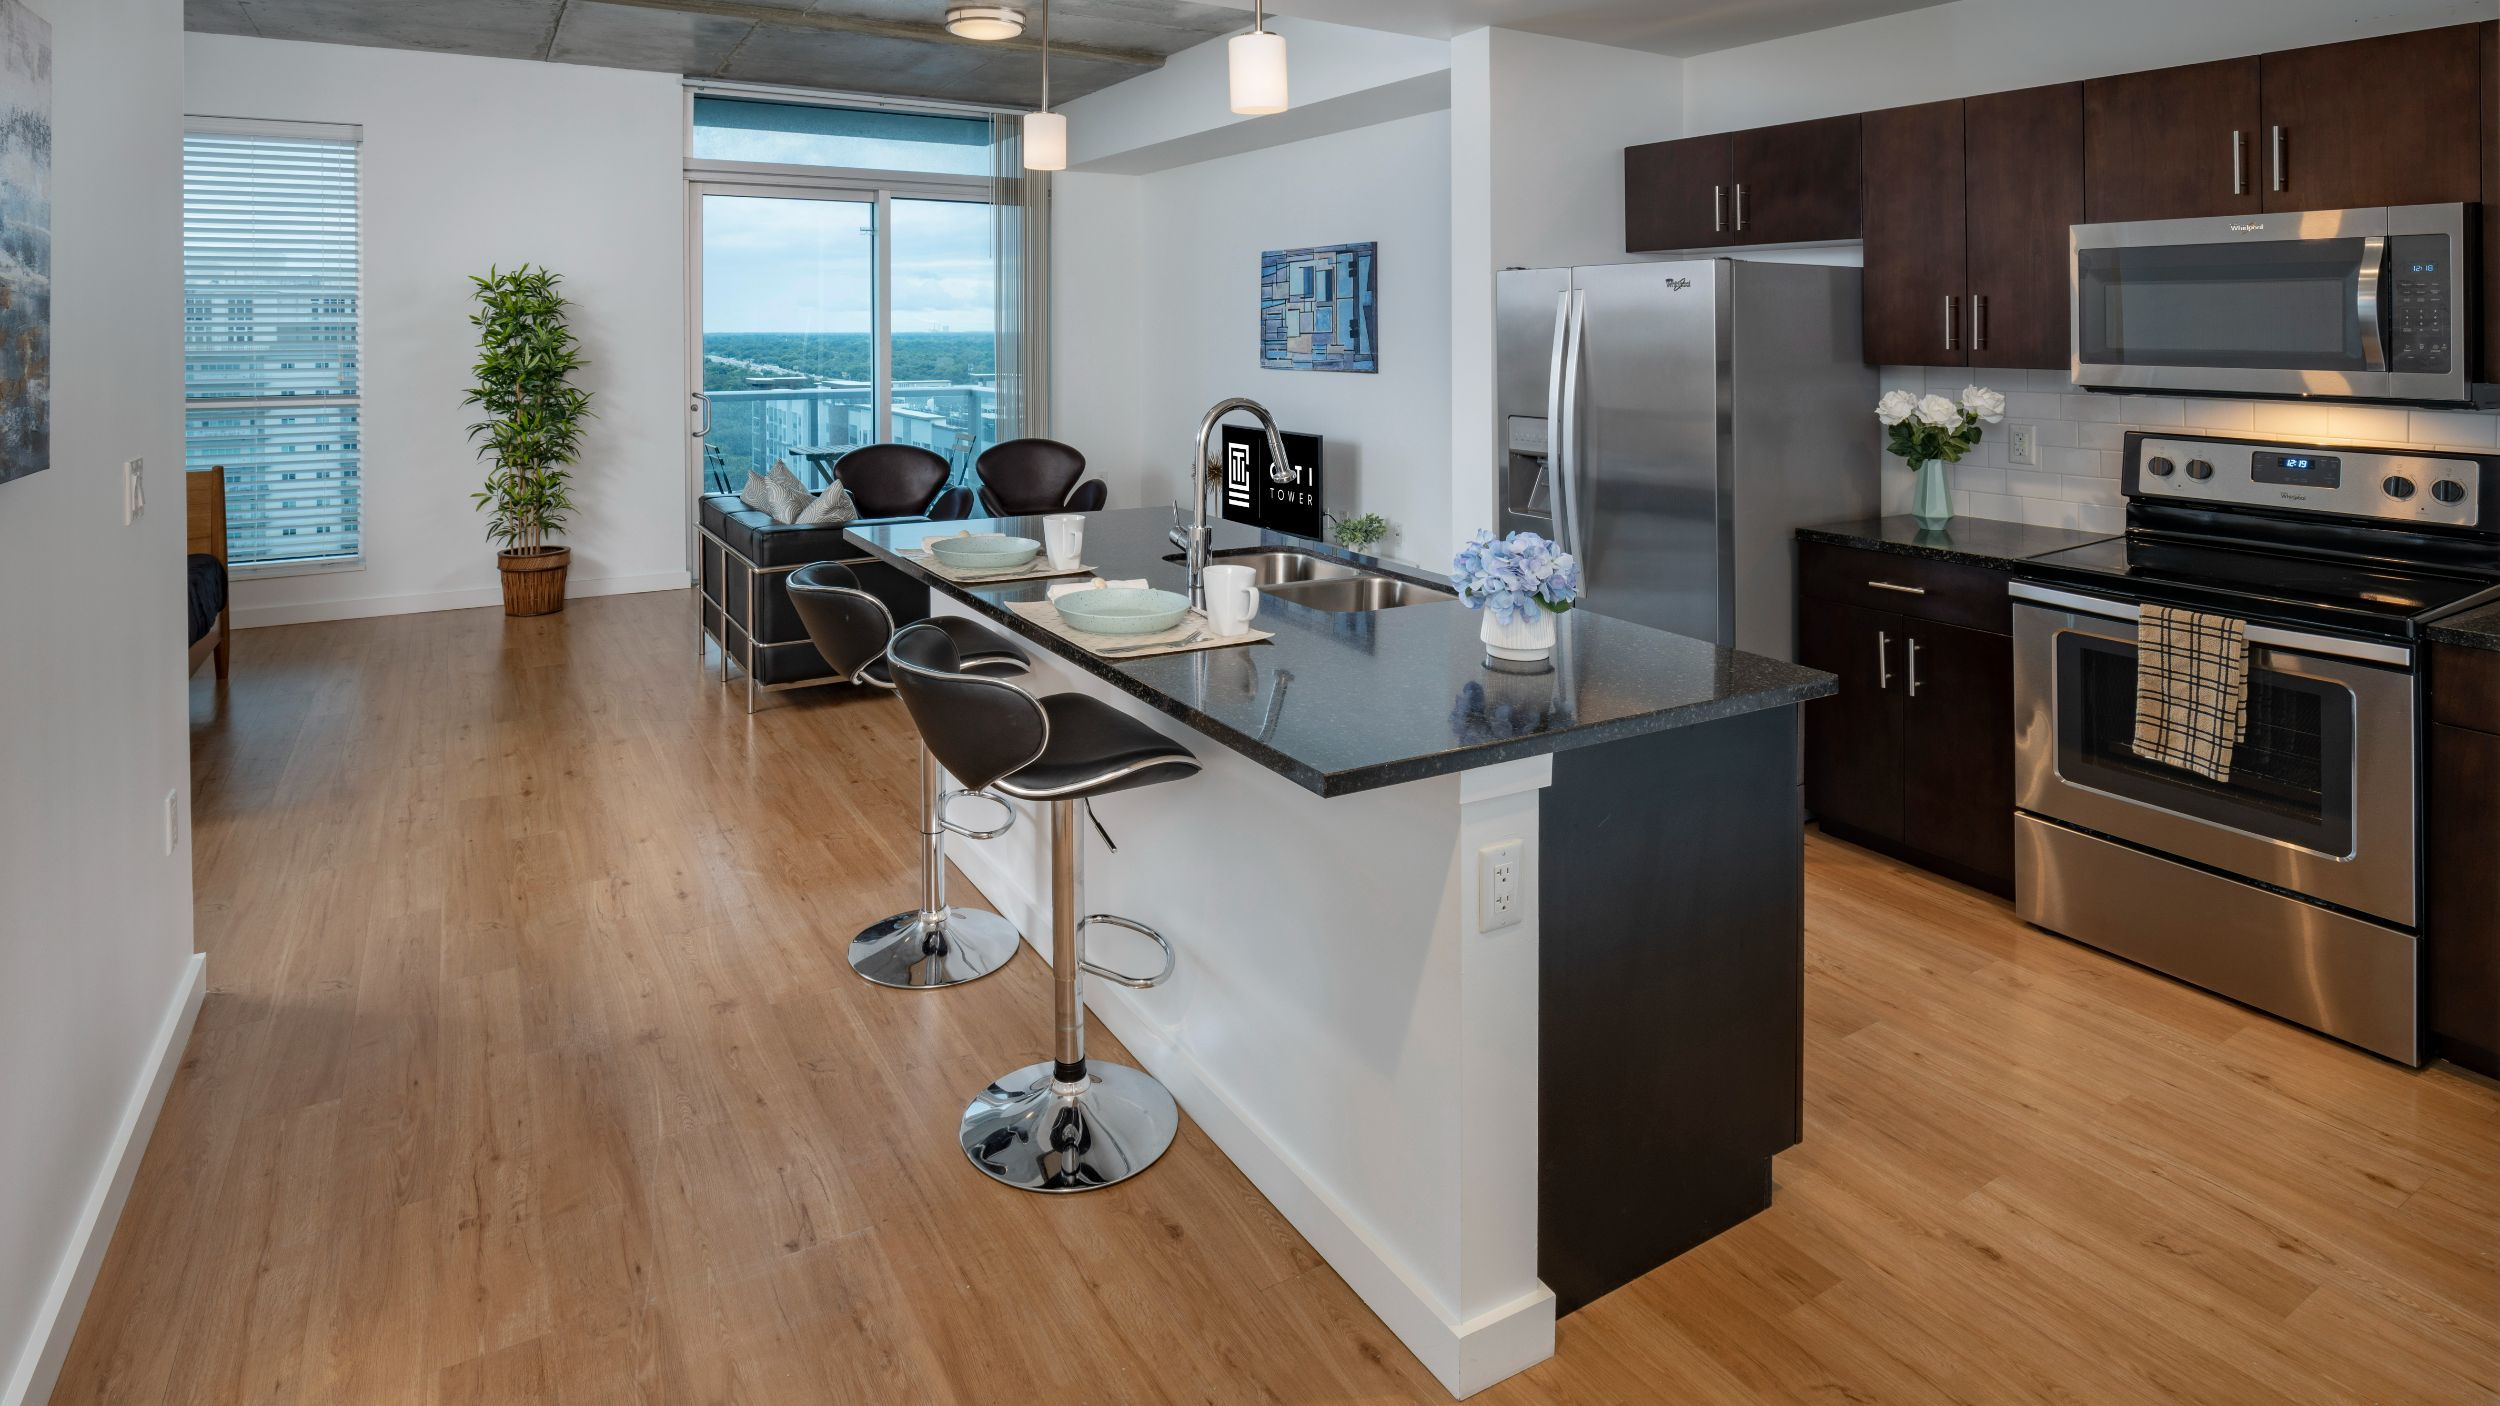 Apartment kitchen with stainless steel appliances and island